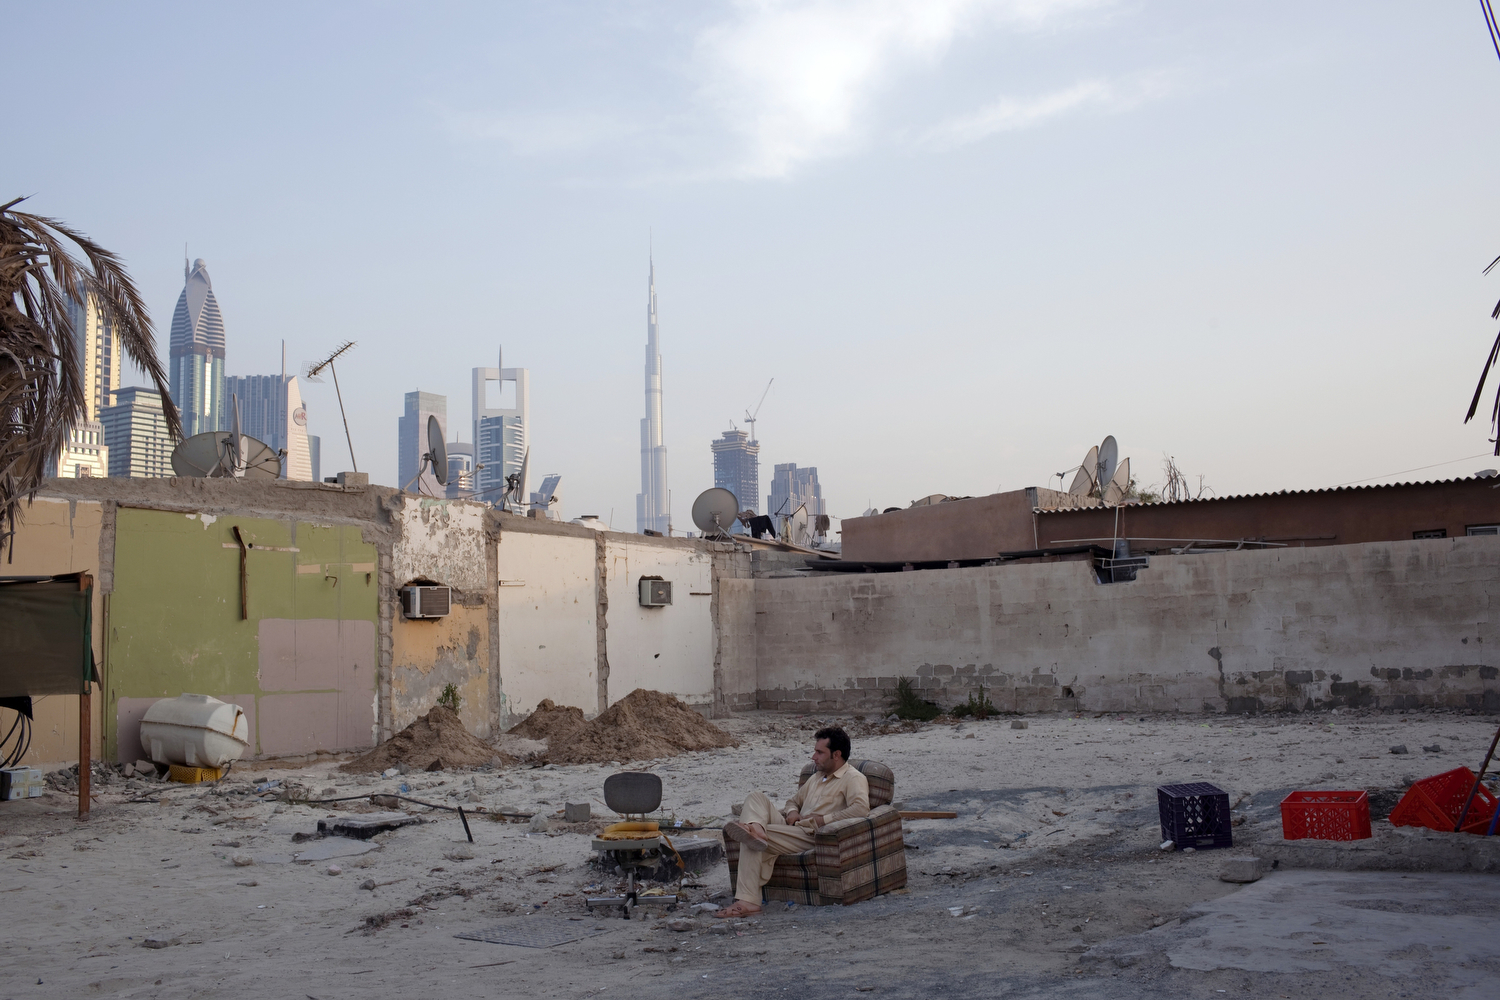 A laborer rests in an abandoned lot in the Al-Satwa neighborhood of Dubai.